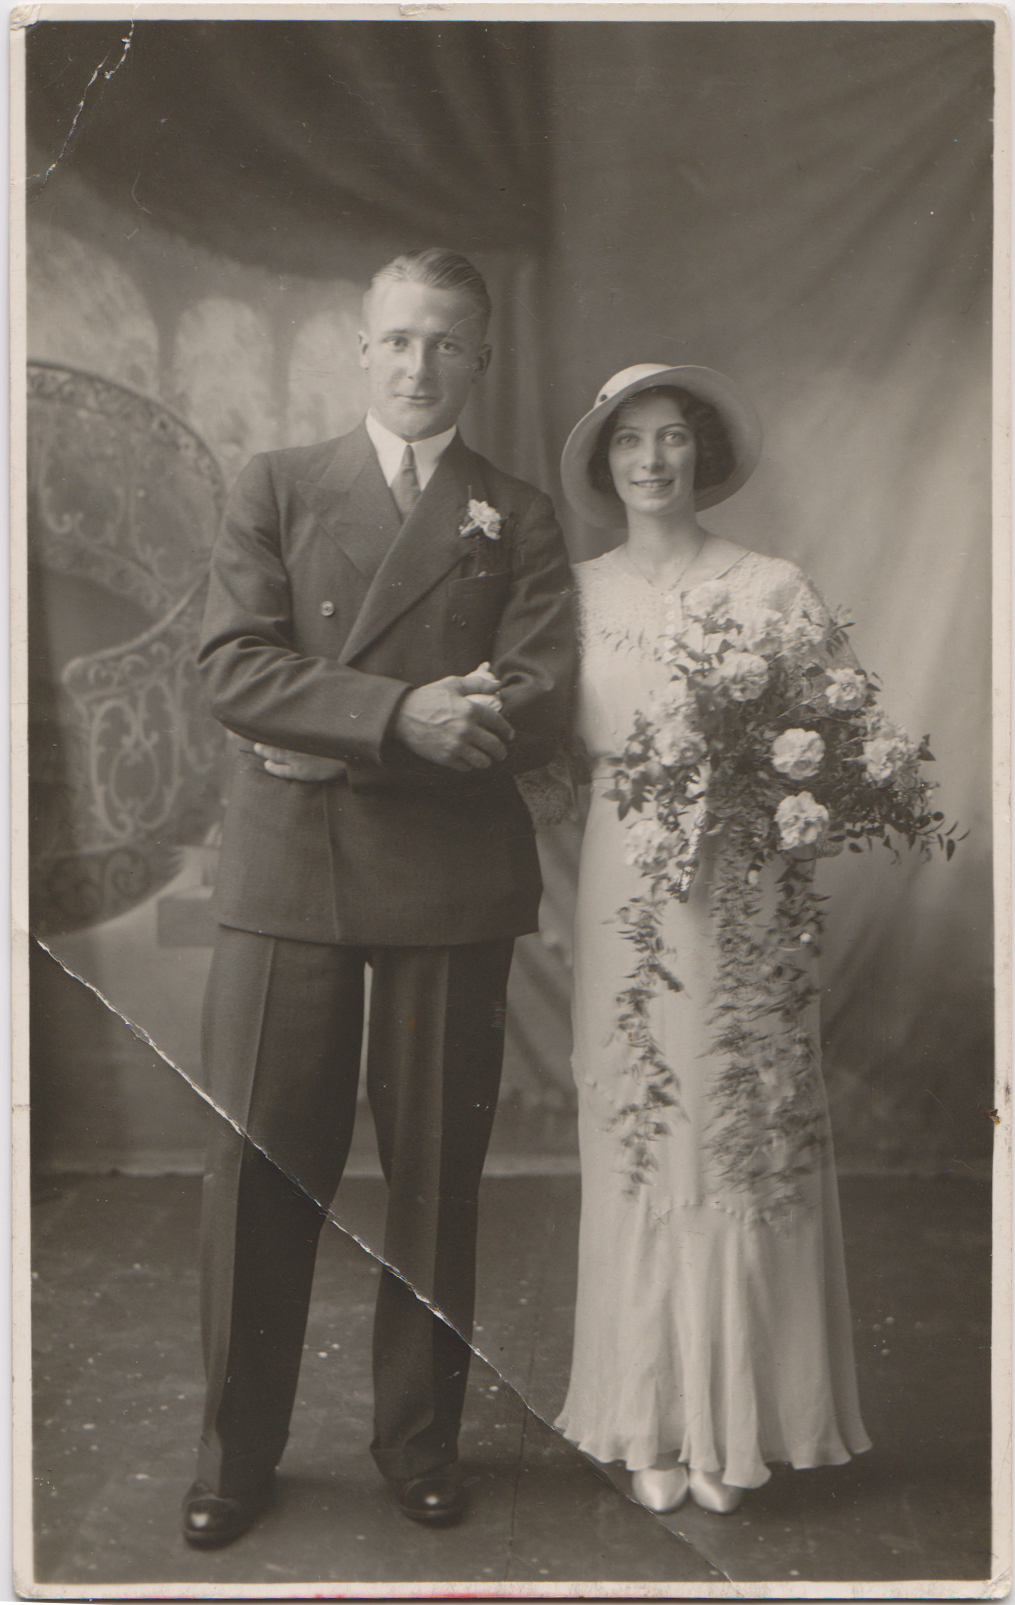 Jimmy and Phyllis Sutherland's wedding